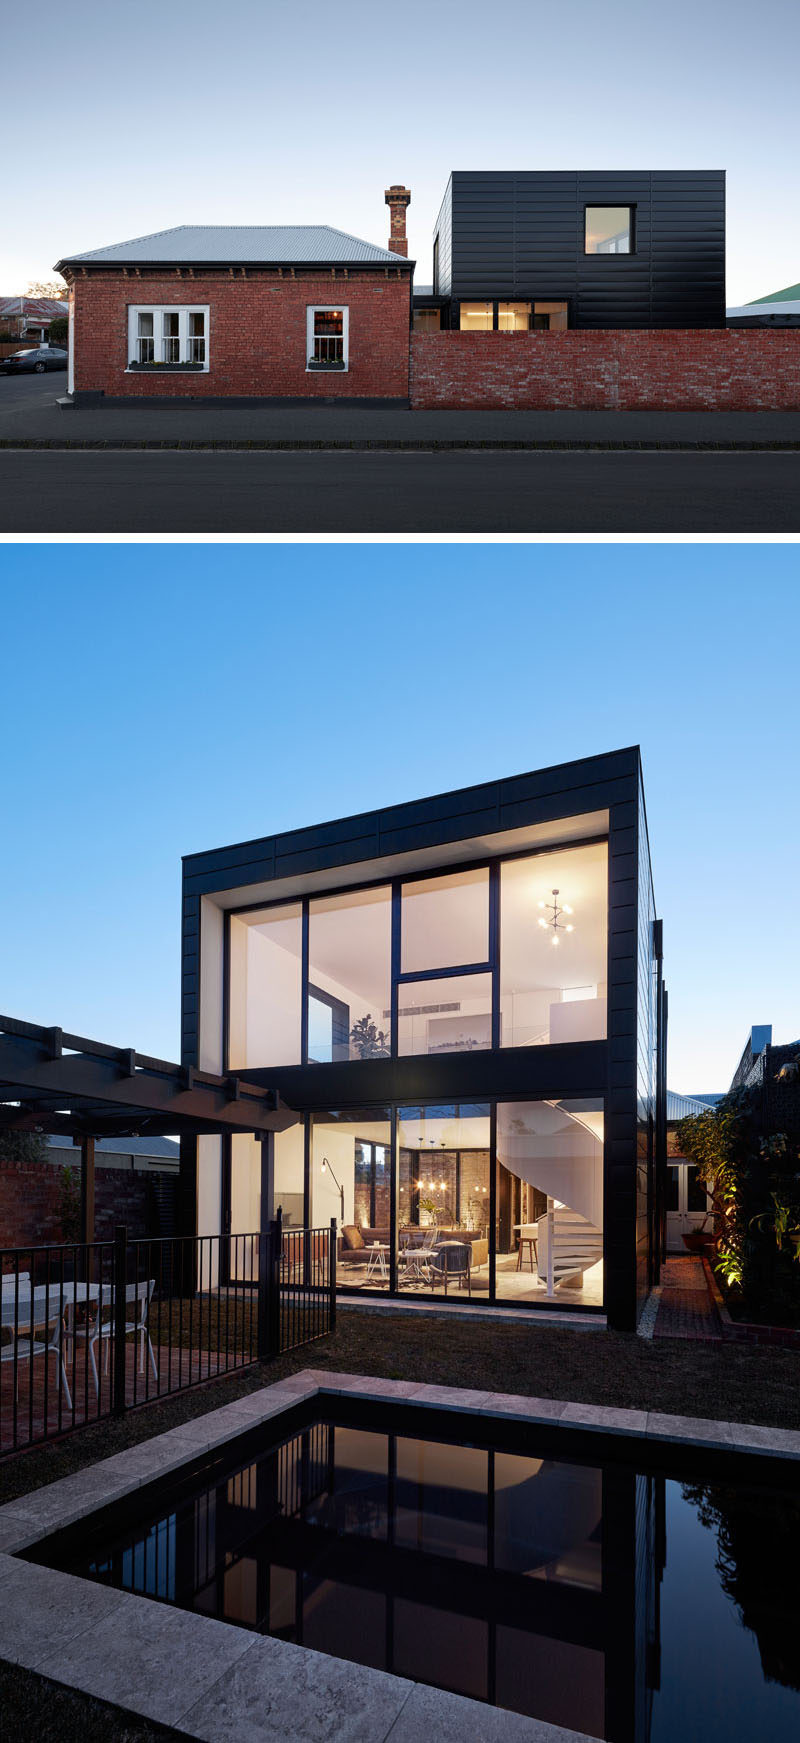 This modern house extension featuresColorbond Diversaclad in a 'Night Sky' color, with complementing black powder?coated double glazed windows. #ModernHouseExtension #Architecture